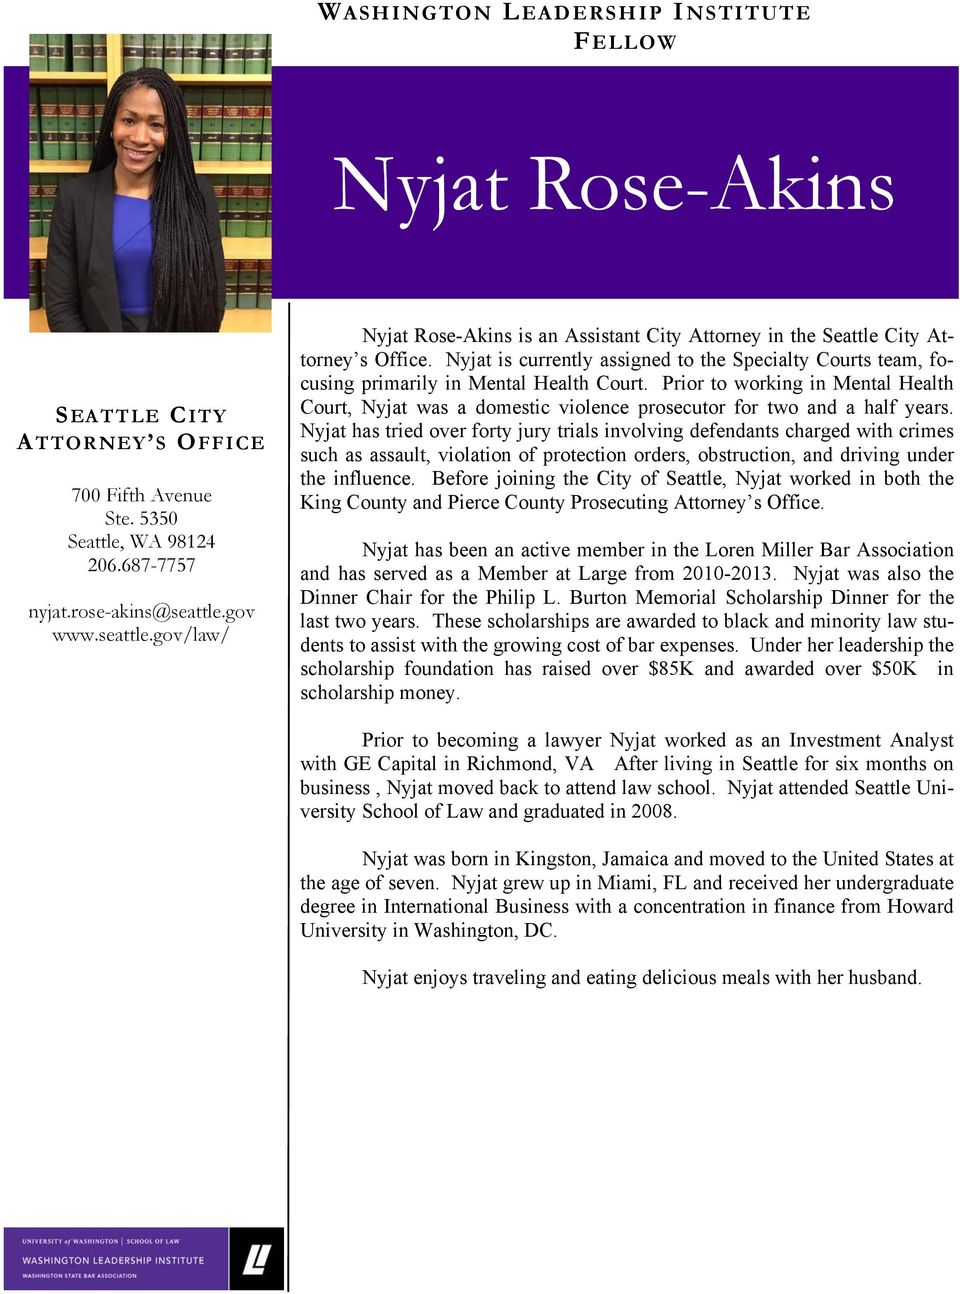 Nyjat is currently assigned to the Specialty Courts team, focusing primarily in Mental Health Court.